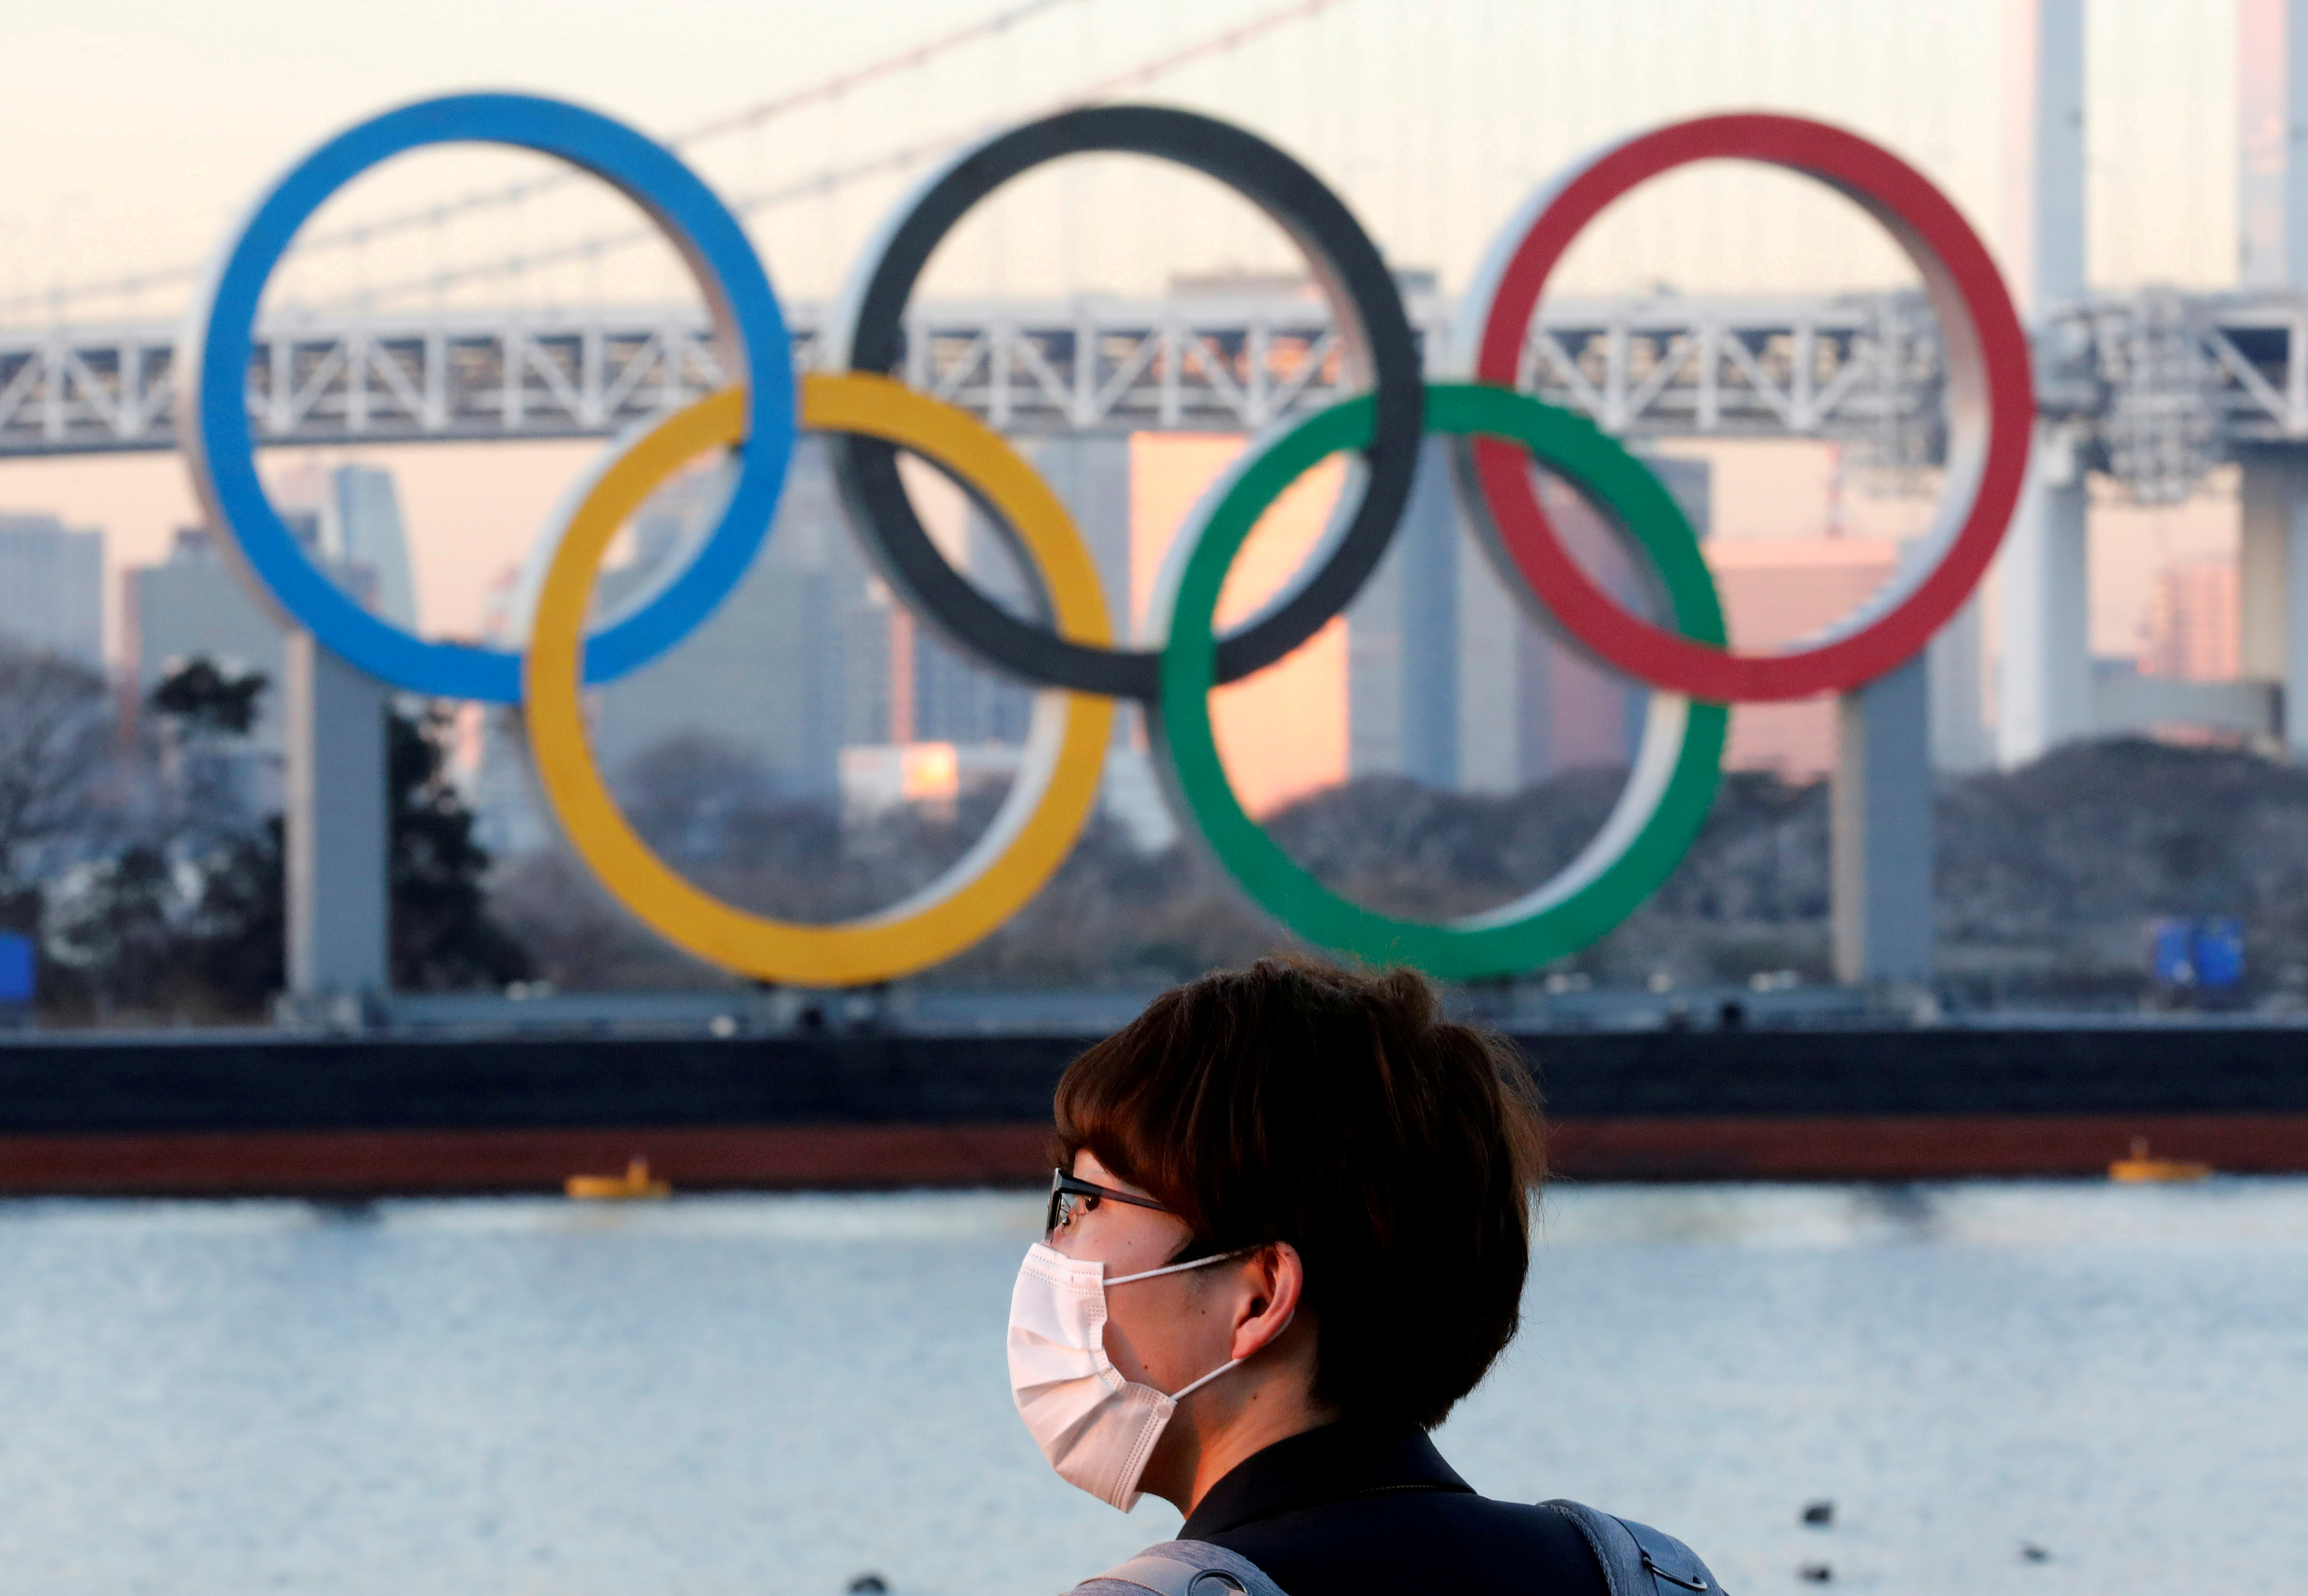 A man wears a protective mask amid the coronavirus (COVID-19) outbreak in front of the giant Olympic rings in Tokyo, Japan, January 13, 2021. REUTERS/Kim Kyung-Hoon/File Photo